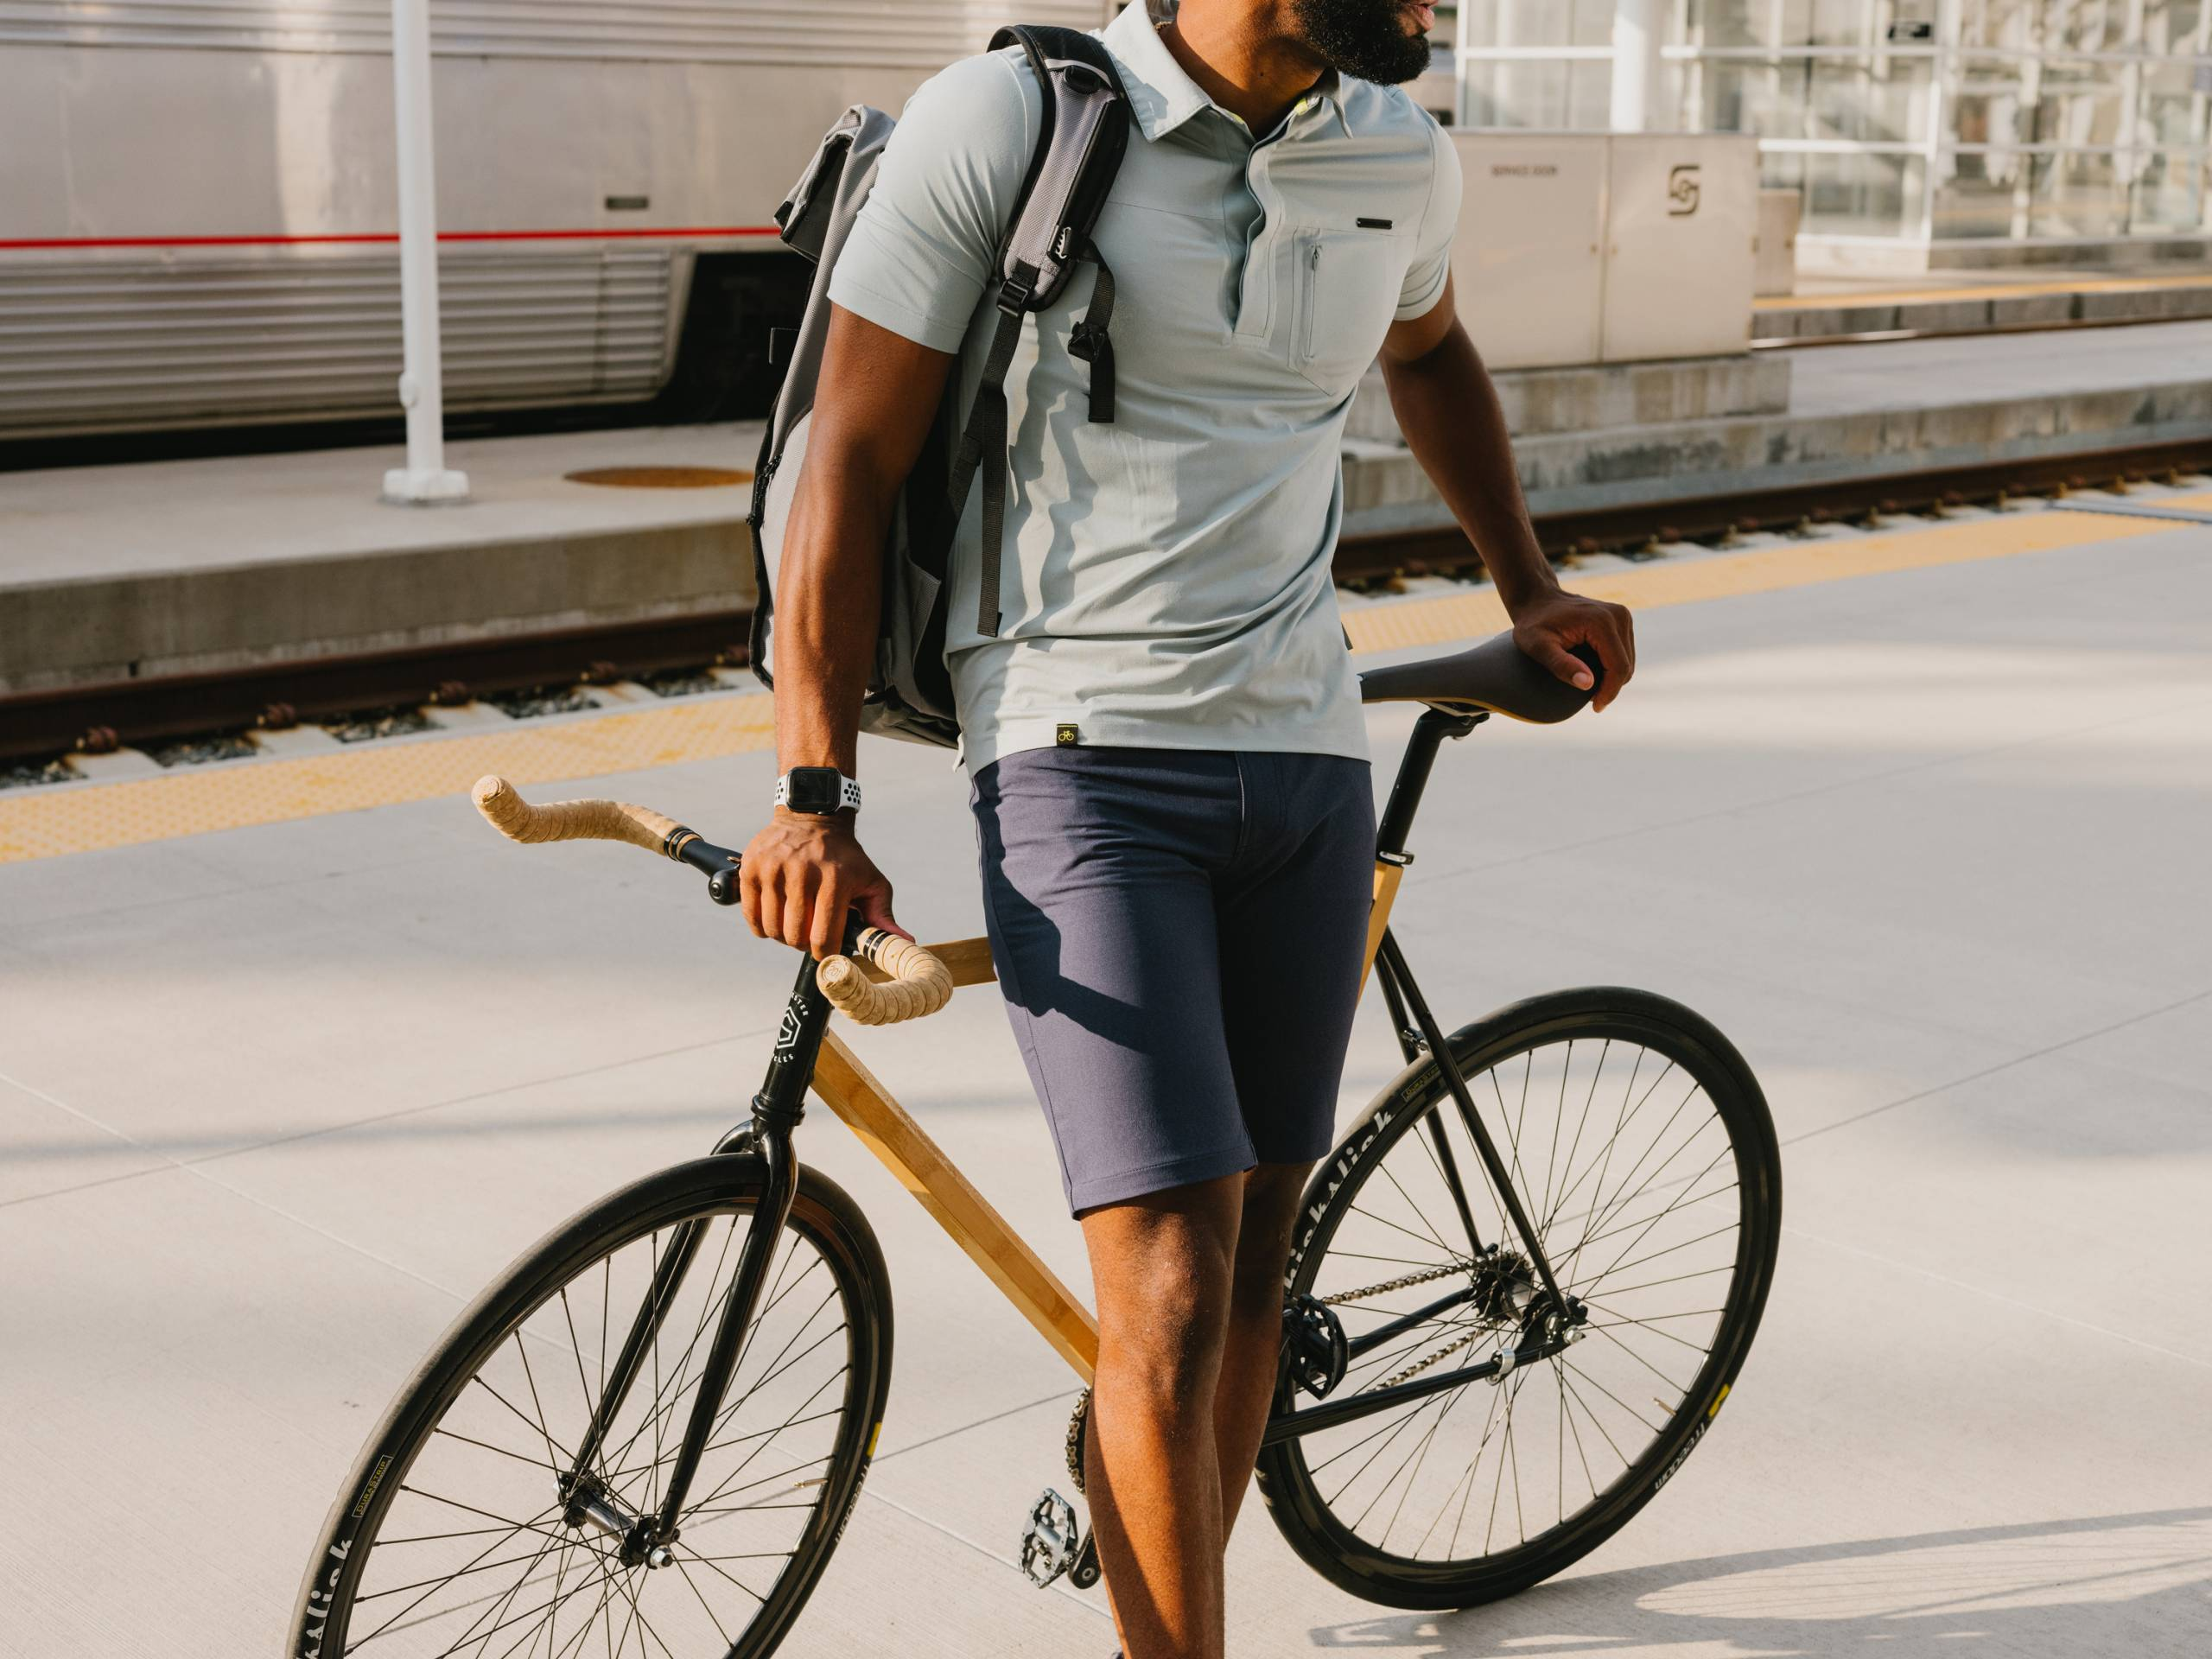 Black man from neck down in collared shirt and navy shorts leaning on his bike